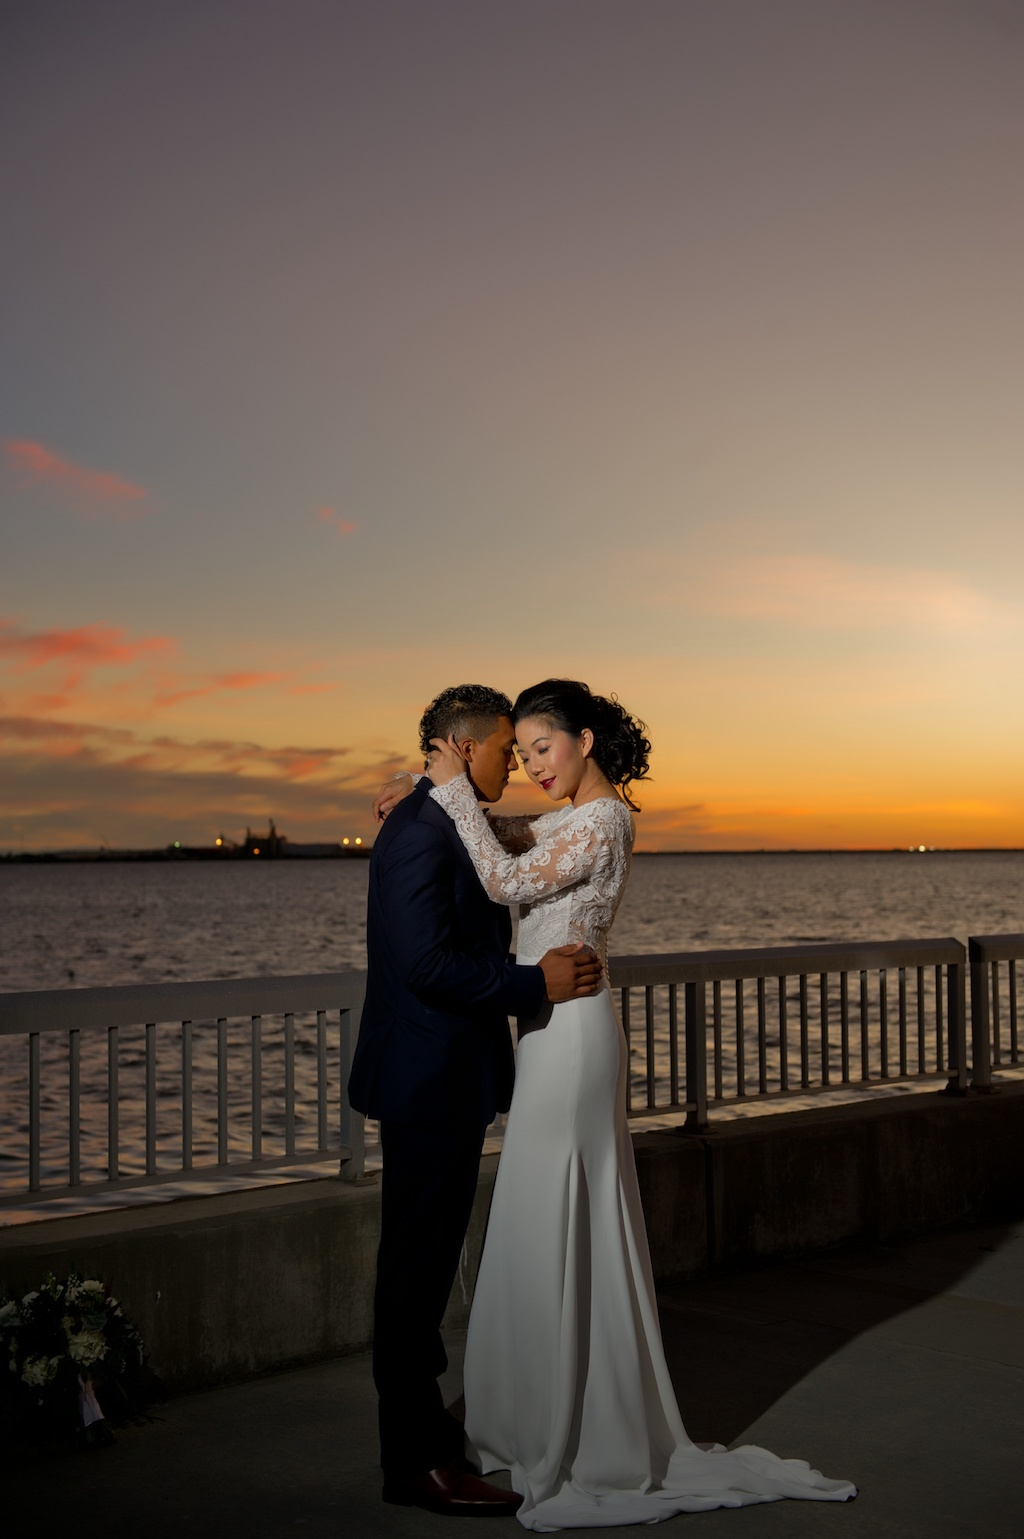 Waterfront Sunset Bride and Groom Wedding Portrait, Groom with Red and White Plaid Bowtie and Blue Suit, Bride in V Neck Lace Long Sleeve Daalarna Couture Wedding Dress | Tampa Wedding Photographer Andi Diamond Photography | Tampa Bridal Wedding Dress Shop The Bride Tampa